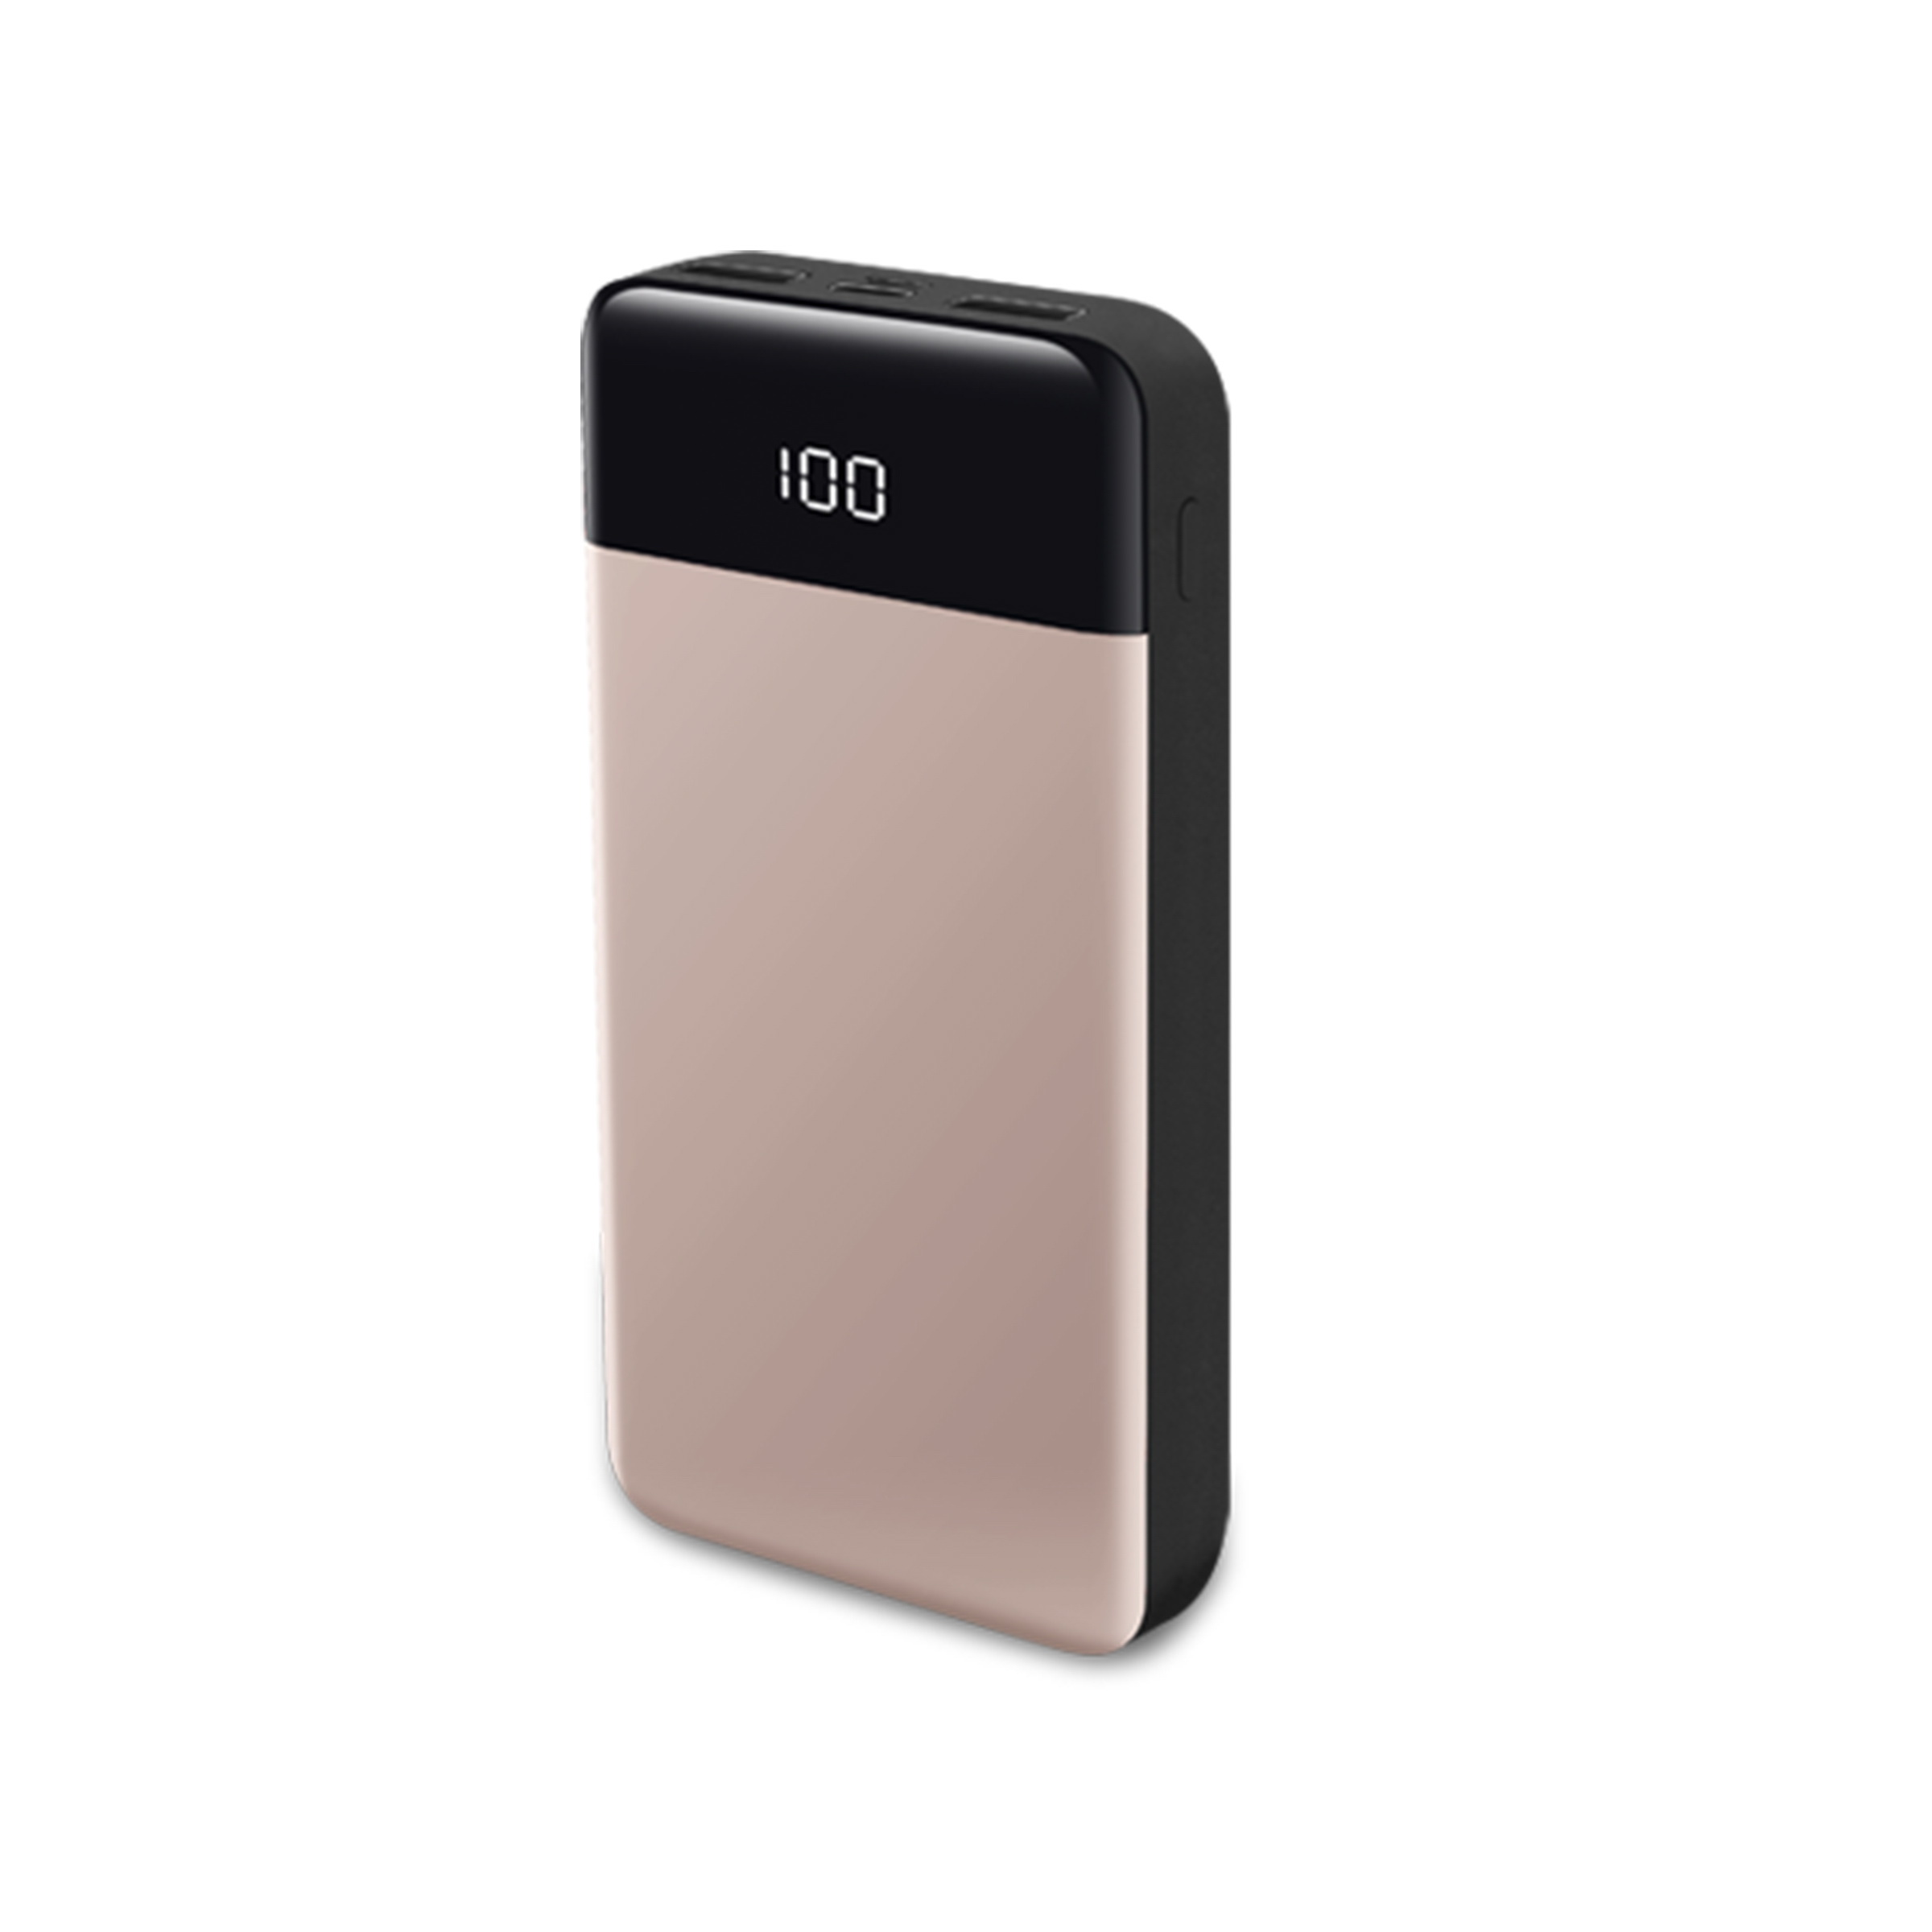 20000mAh compact portable charger, 3-port external battery PD power bank with high speed charging